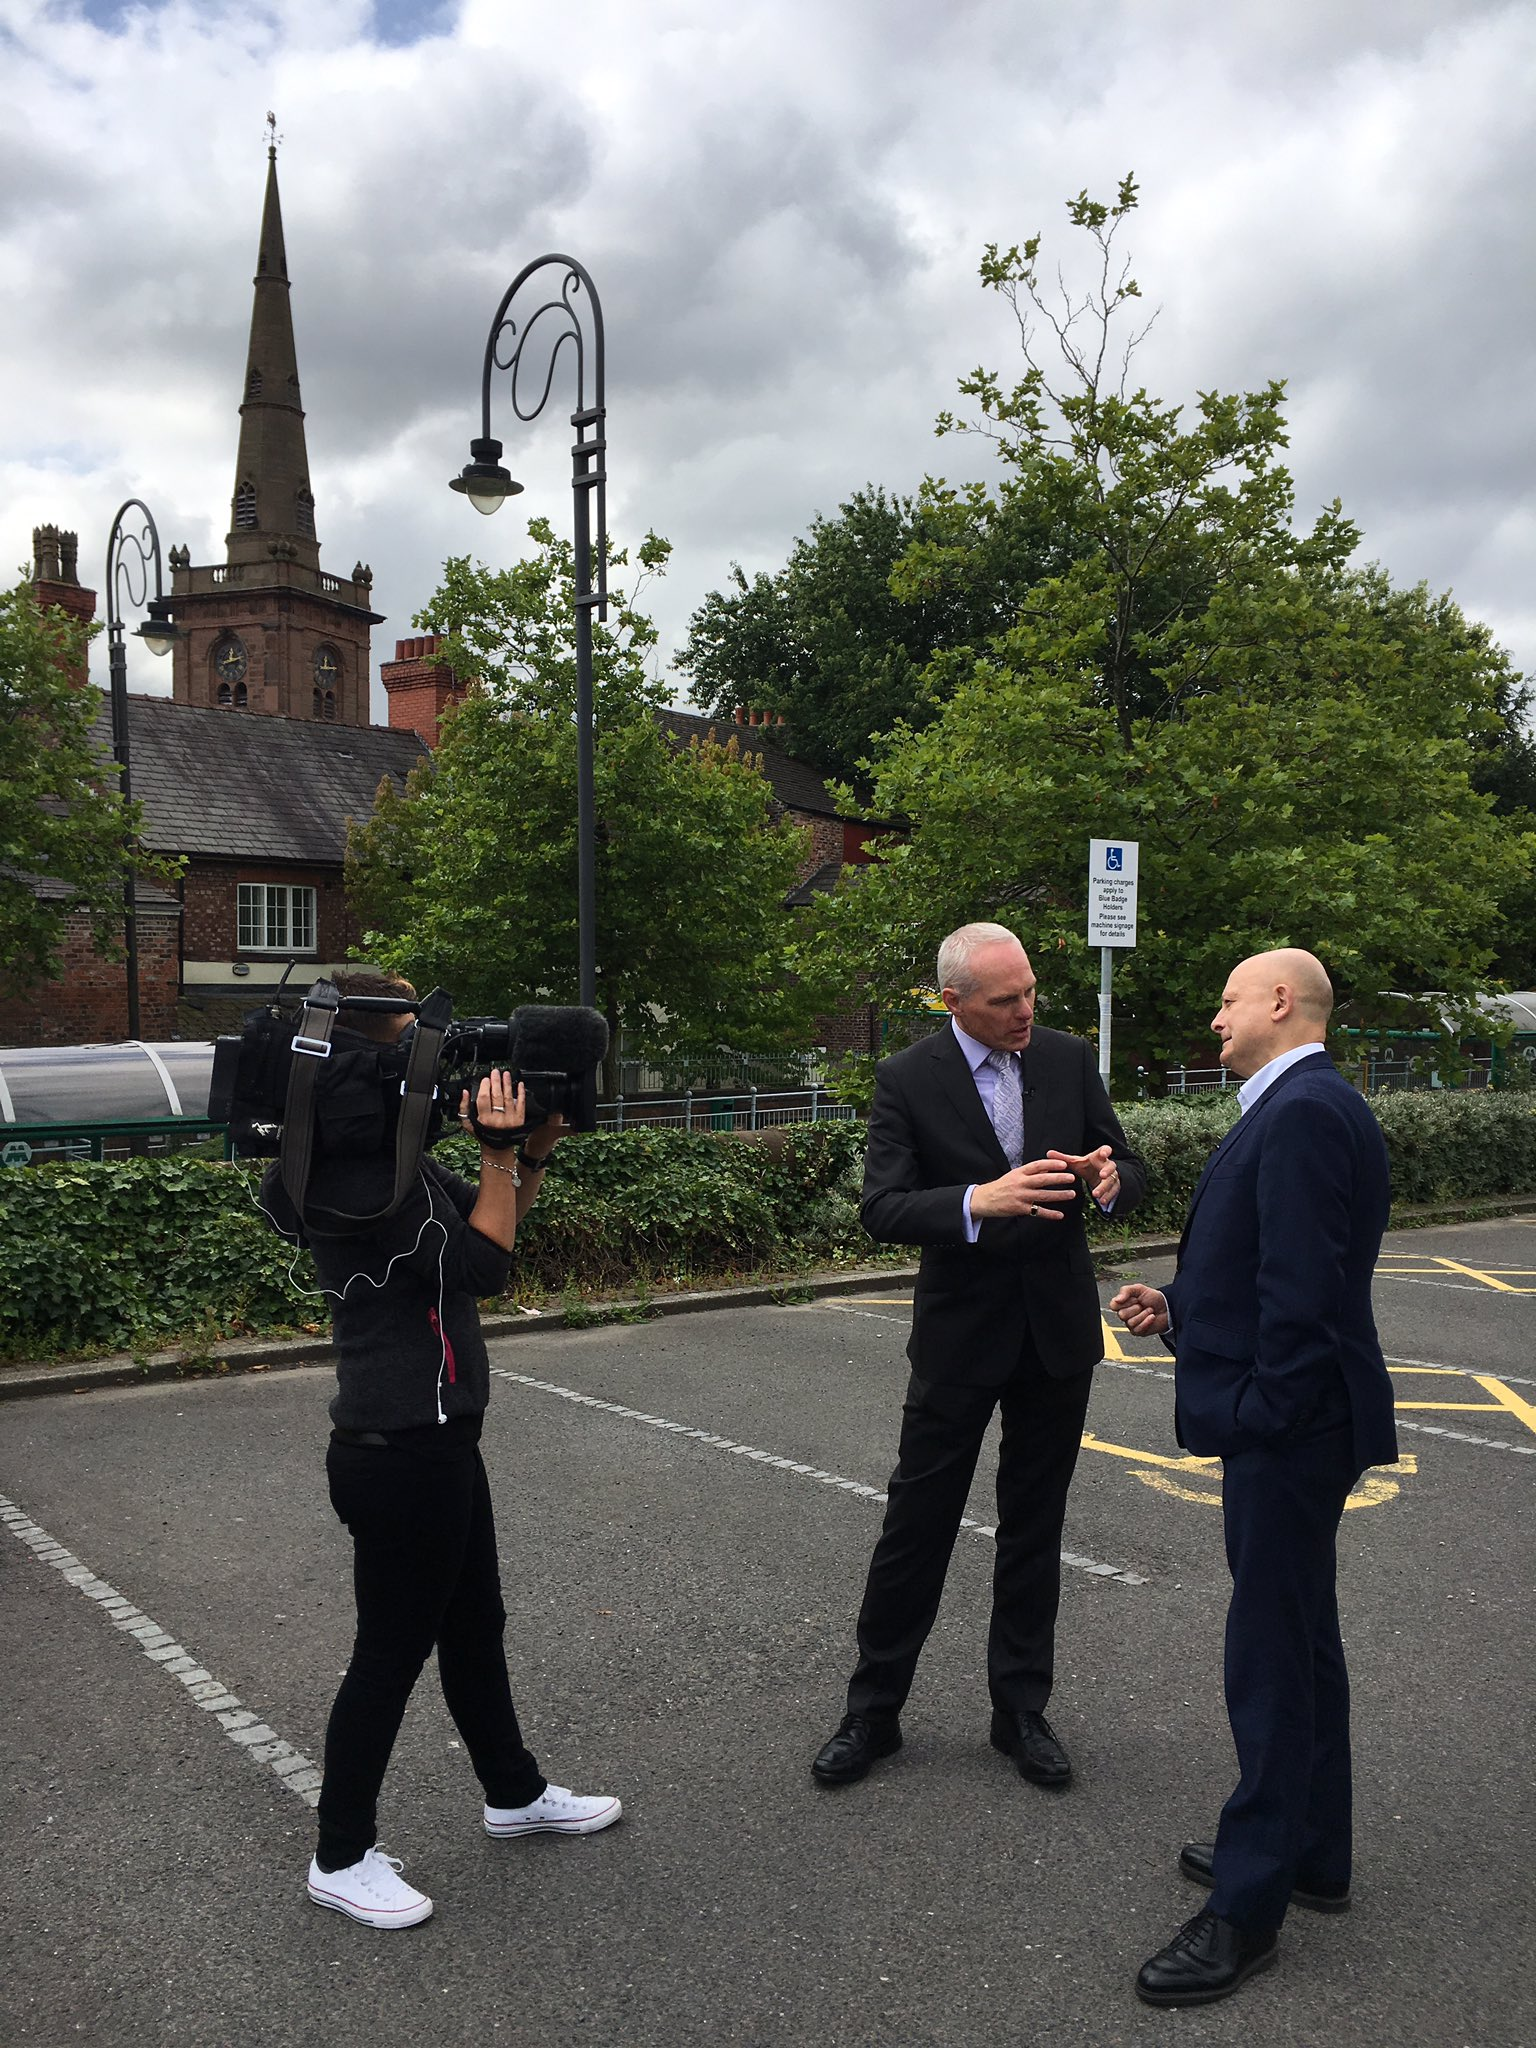 Professor Richard Wilson talking to @MerseyHack about #Shakespeare North Playhouse & the fascinating link between #Prescot & #Shakespeare https://t.co/kQ0mNTRpSV